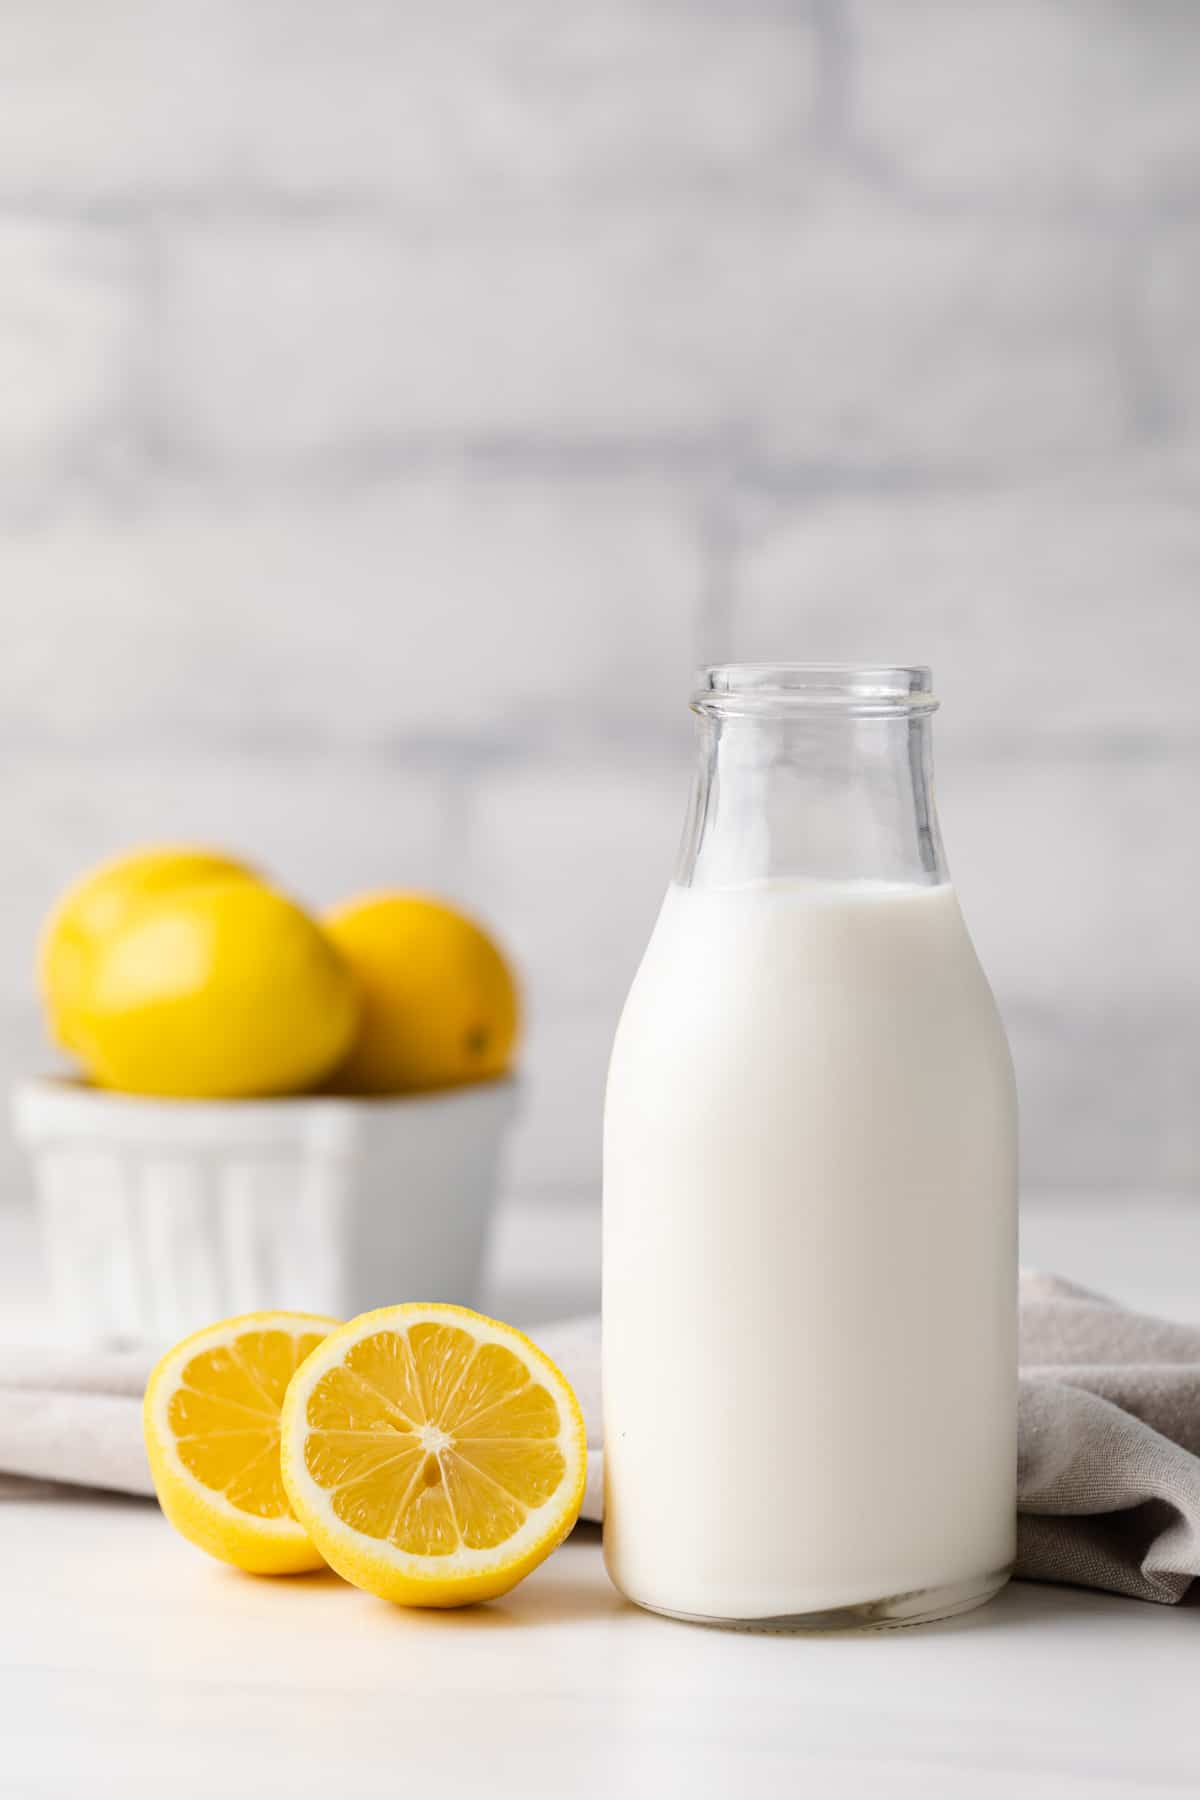 glass jar filled with homemade buttermilk along with a napkin and lemons in the background